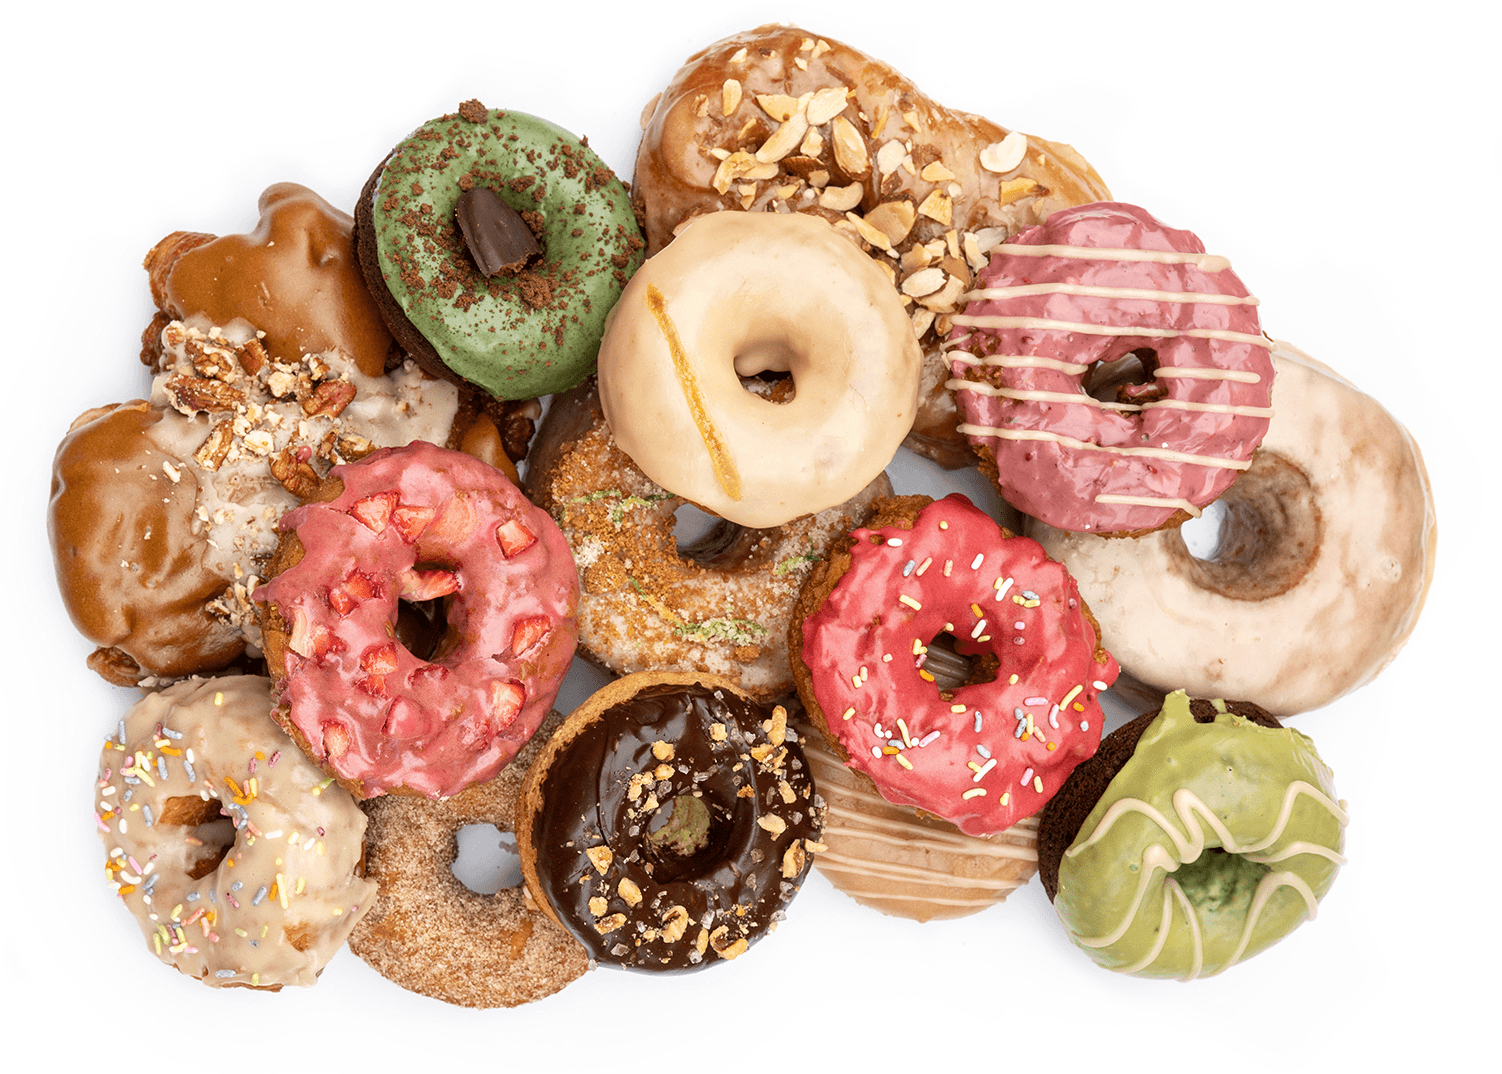 A mashup of Holey Rollers Donuts